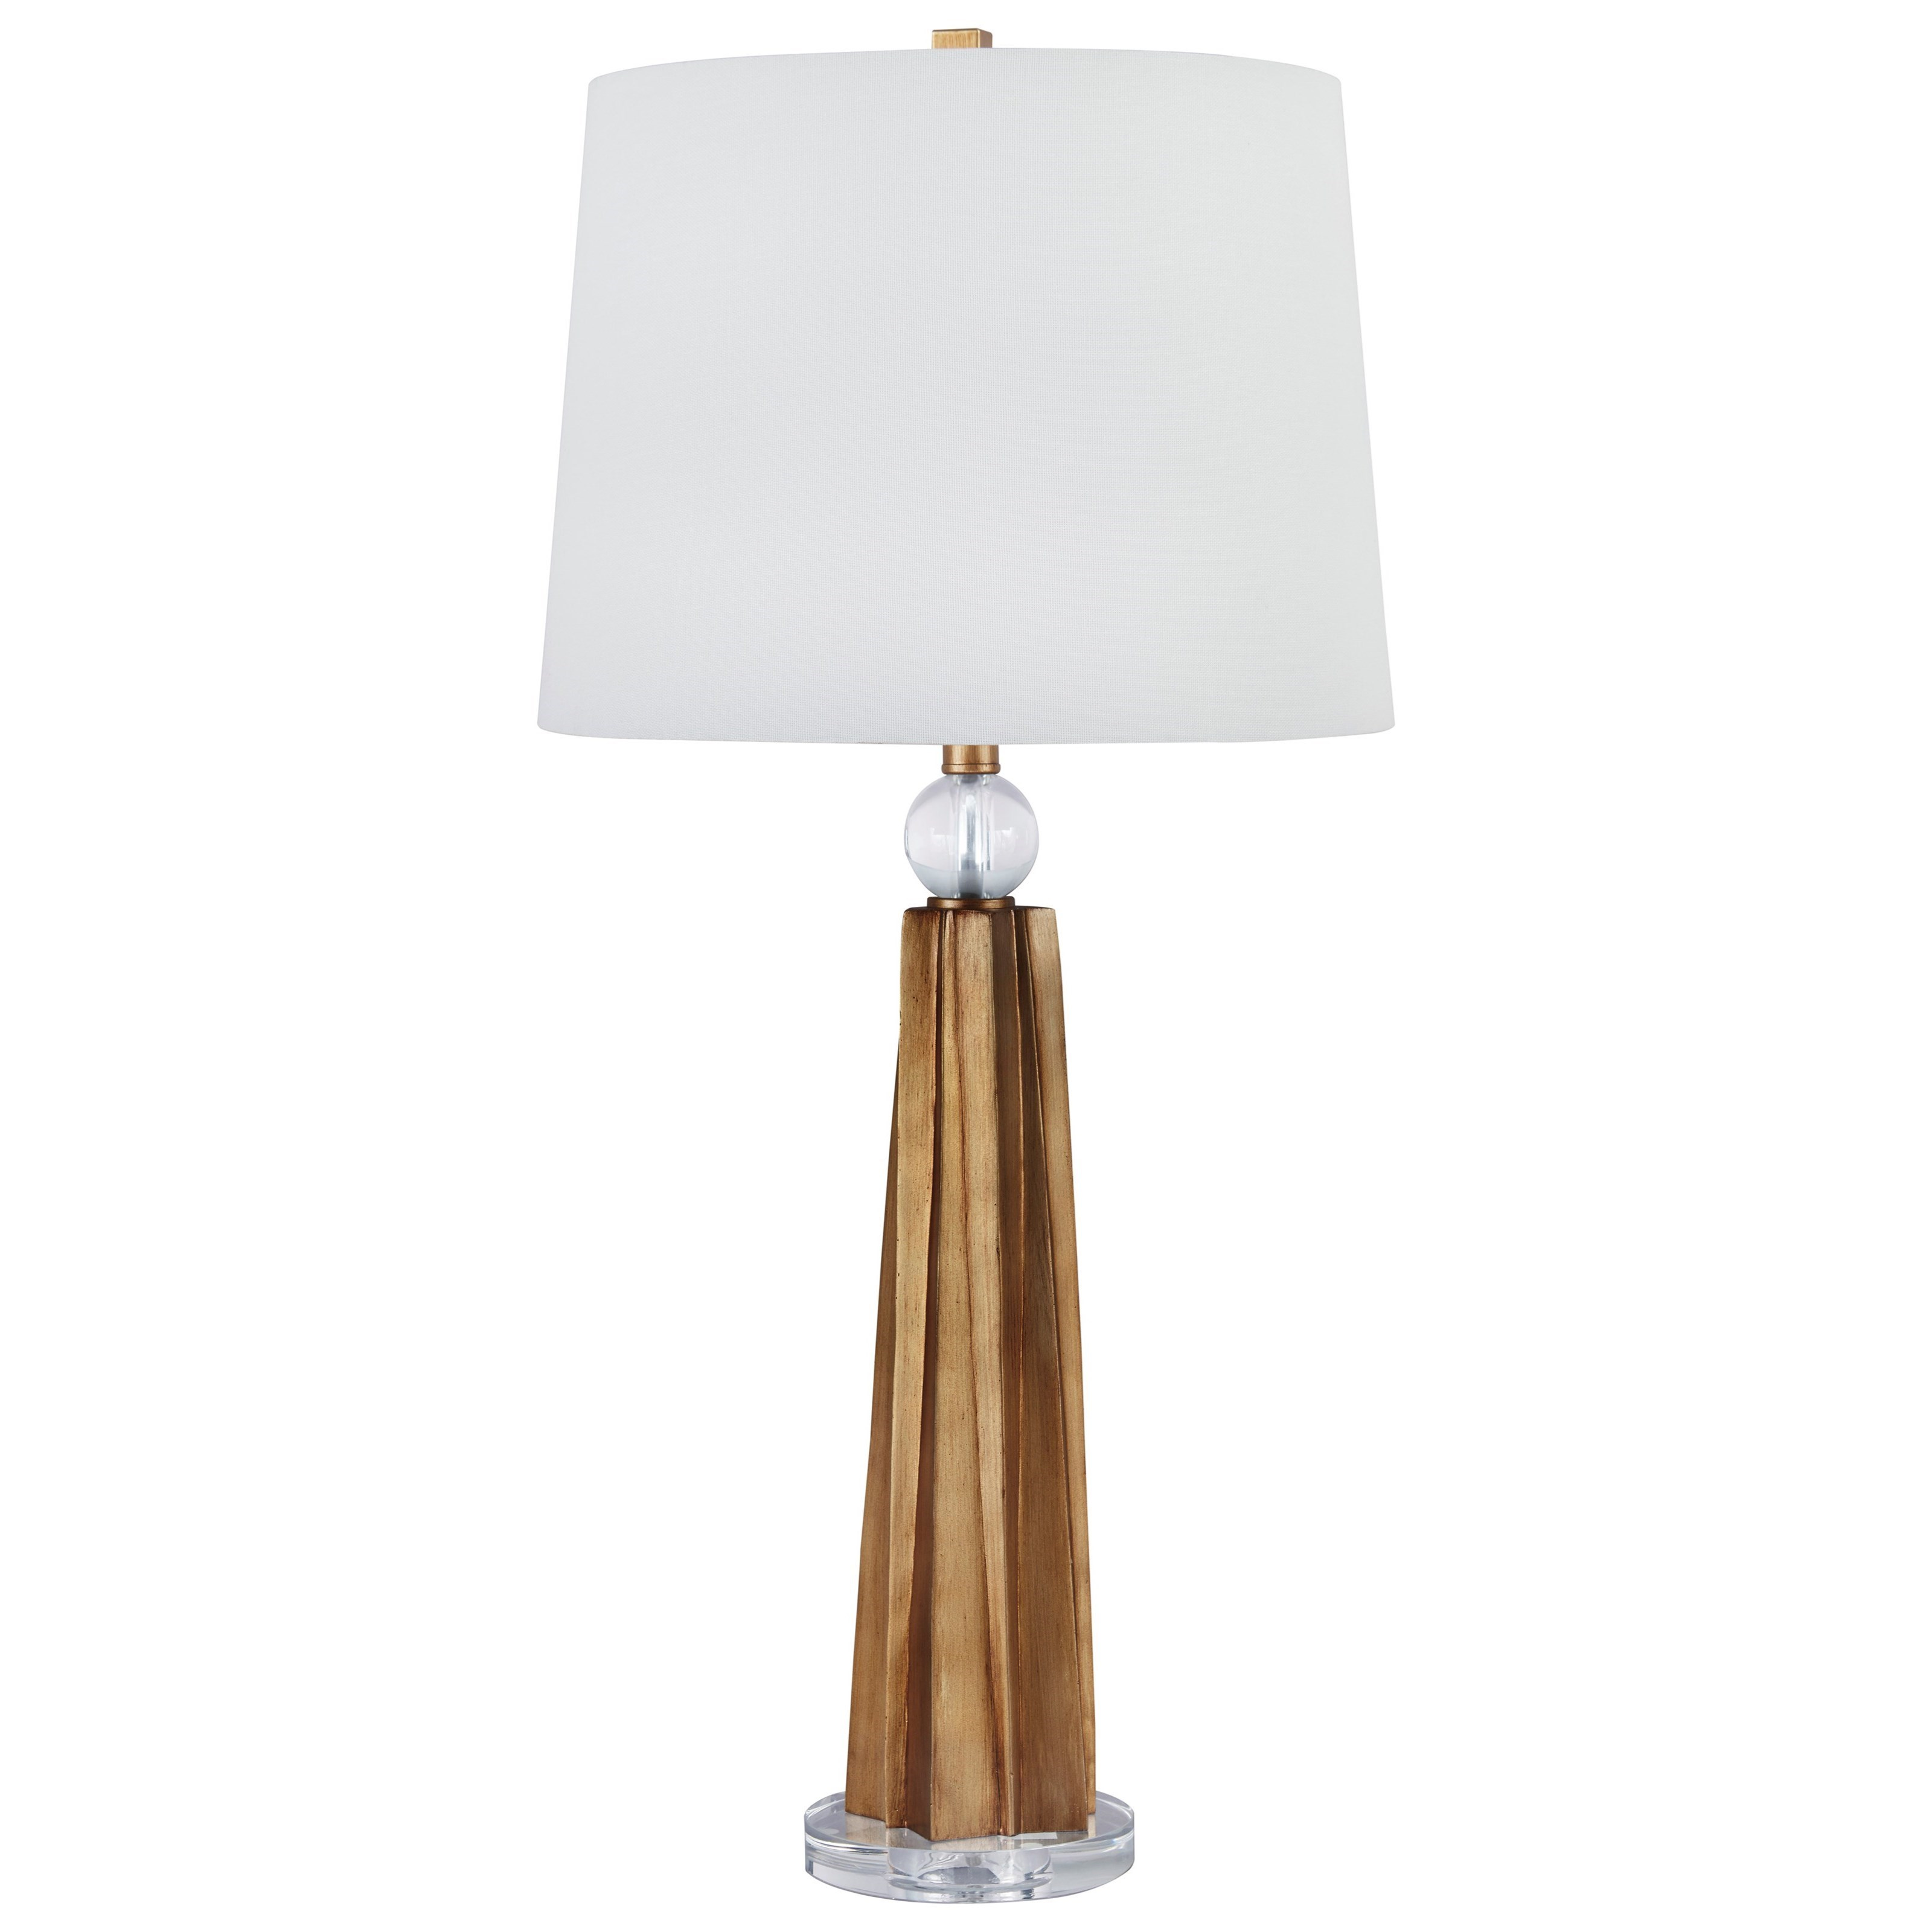 Ashley L311154 Table Lamps in Antique Copper and Wood Finish Pack of 2